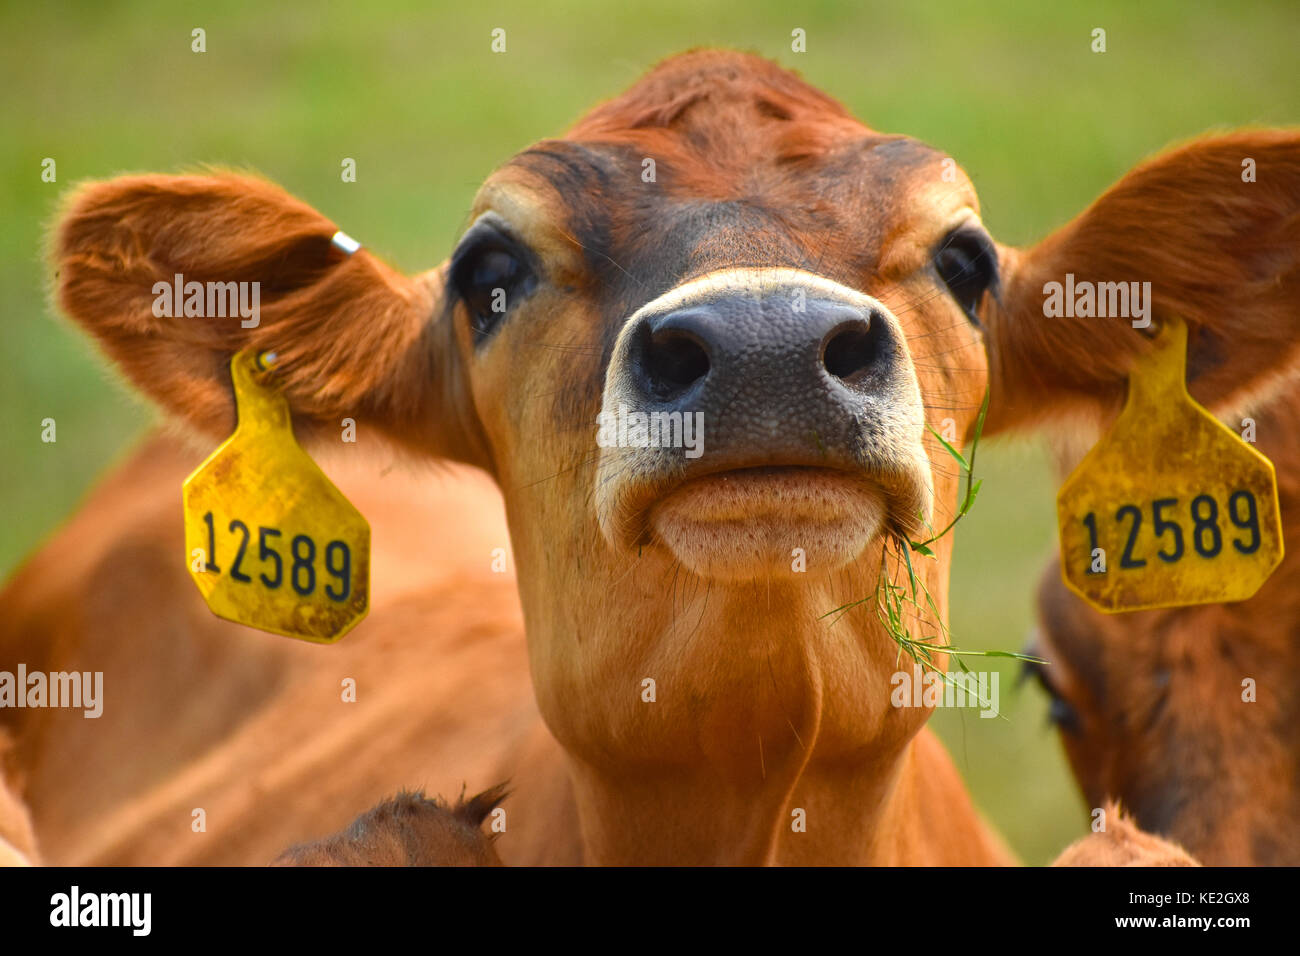 Cow Face and Head Closeup with Tags in her ears showing her identification number - Stock Image